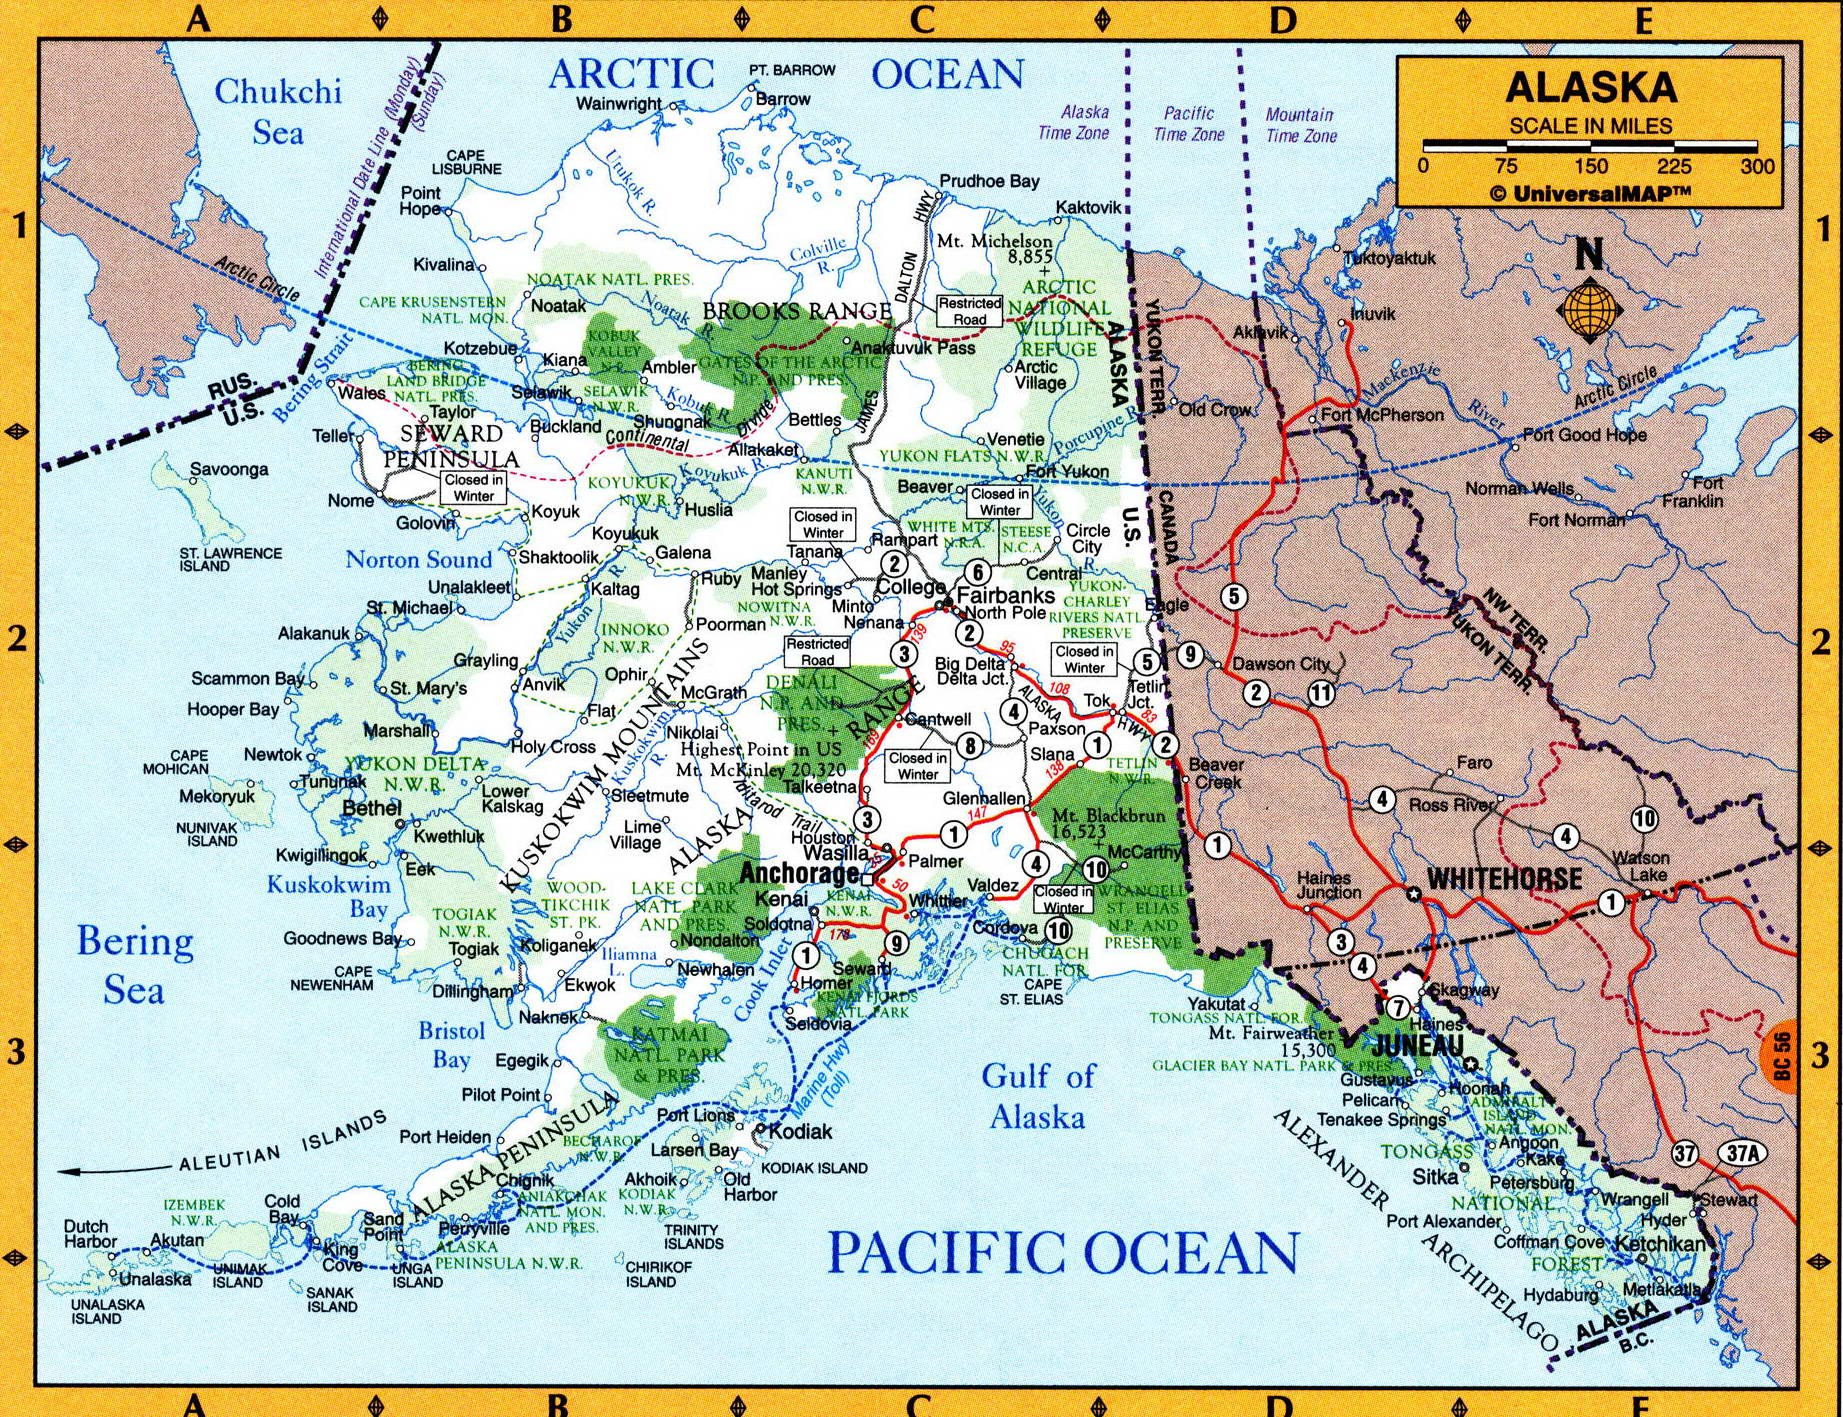 Geography map of Alaska